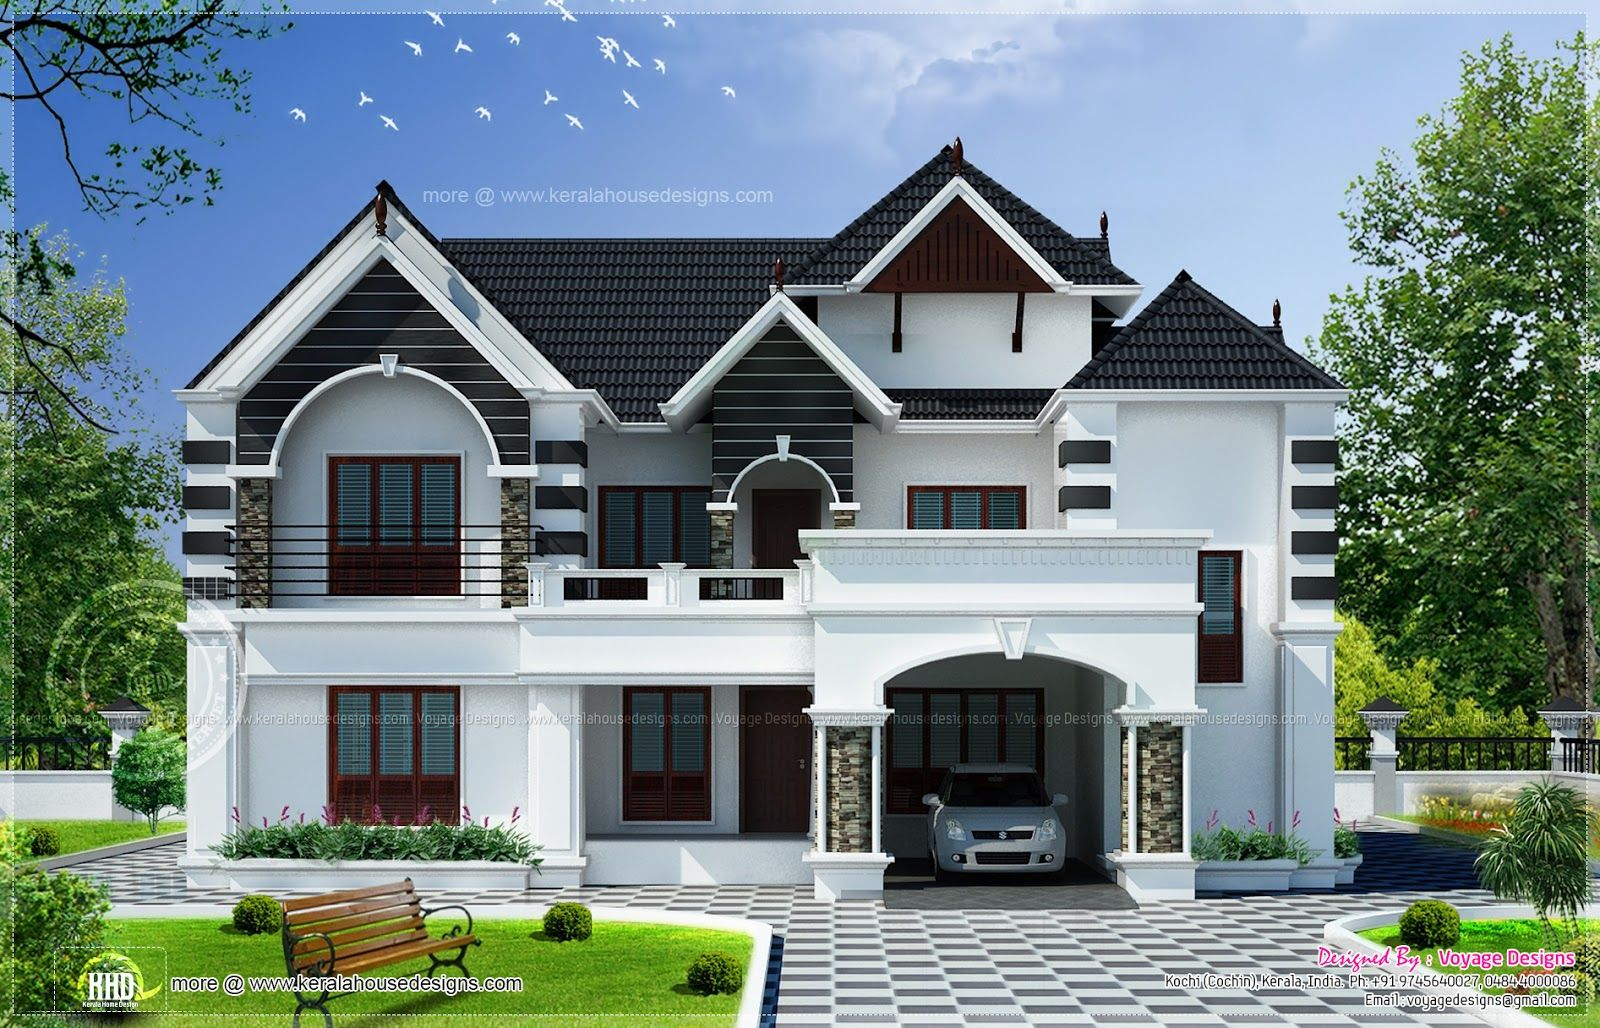 Colonial style house new house ideas pinterest for Home designs kerala architects